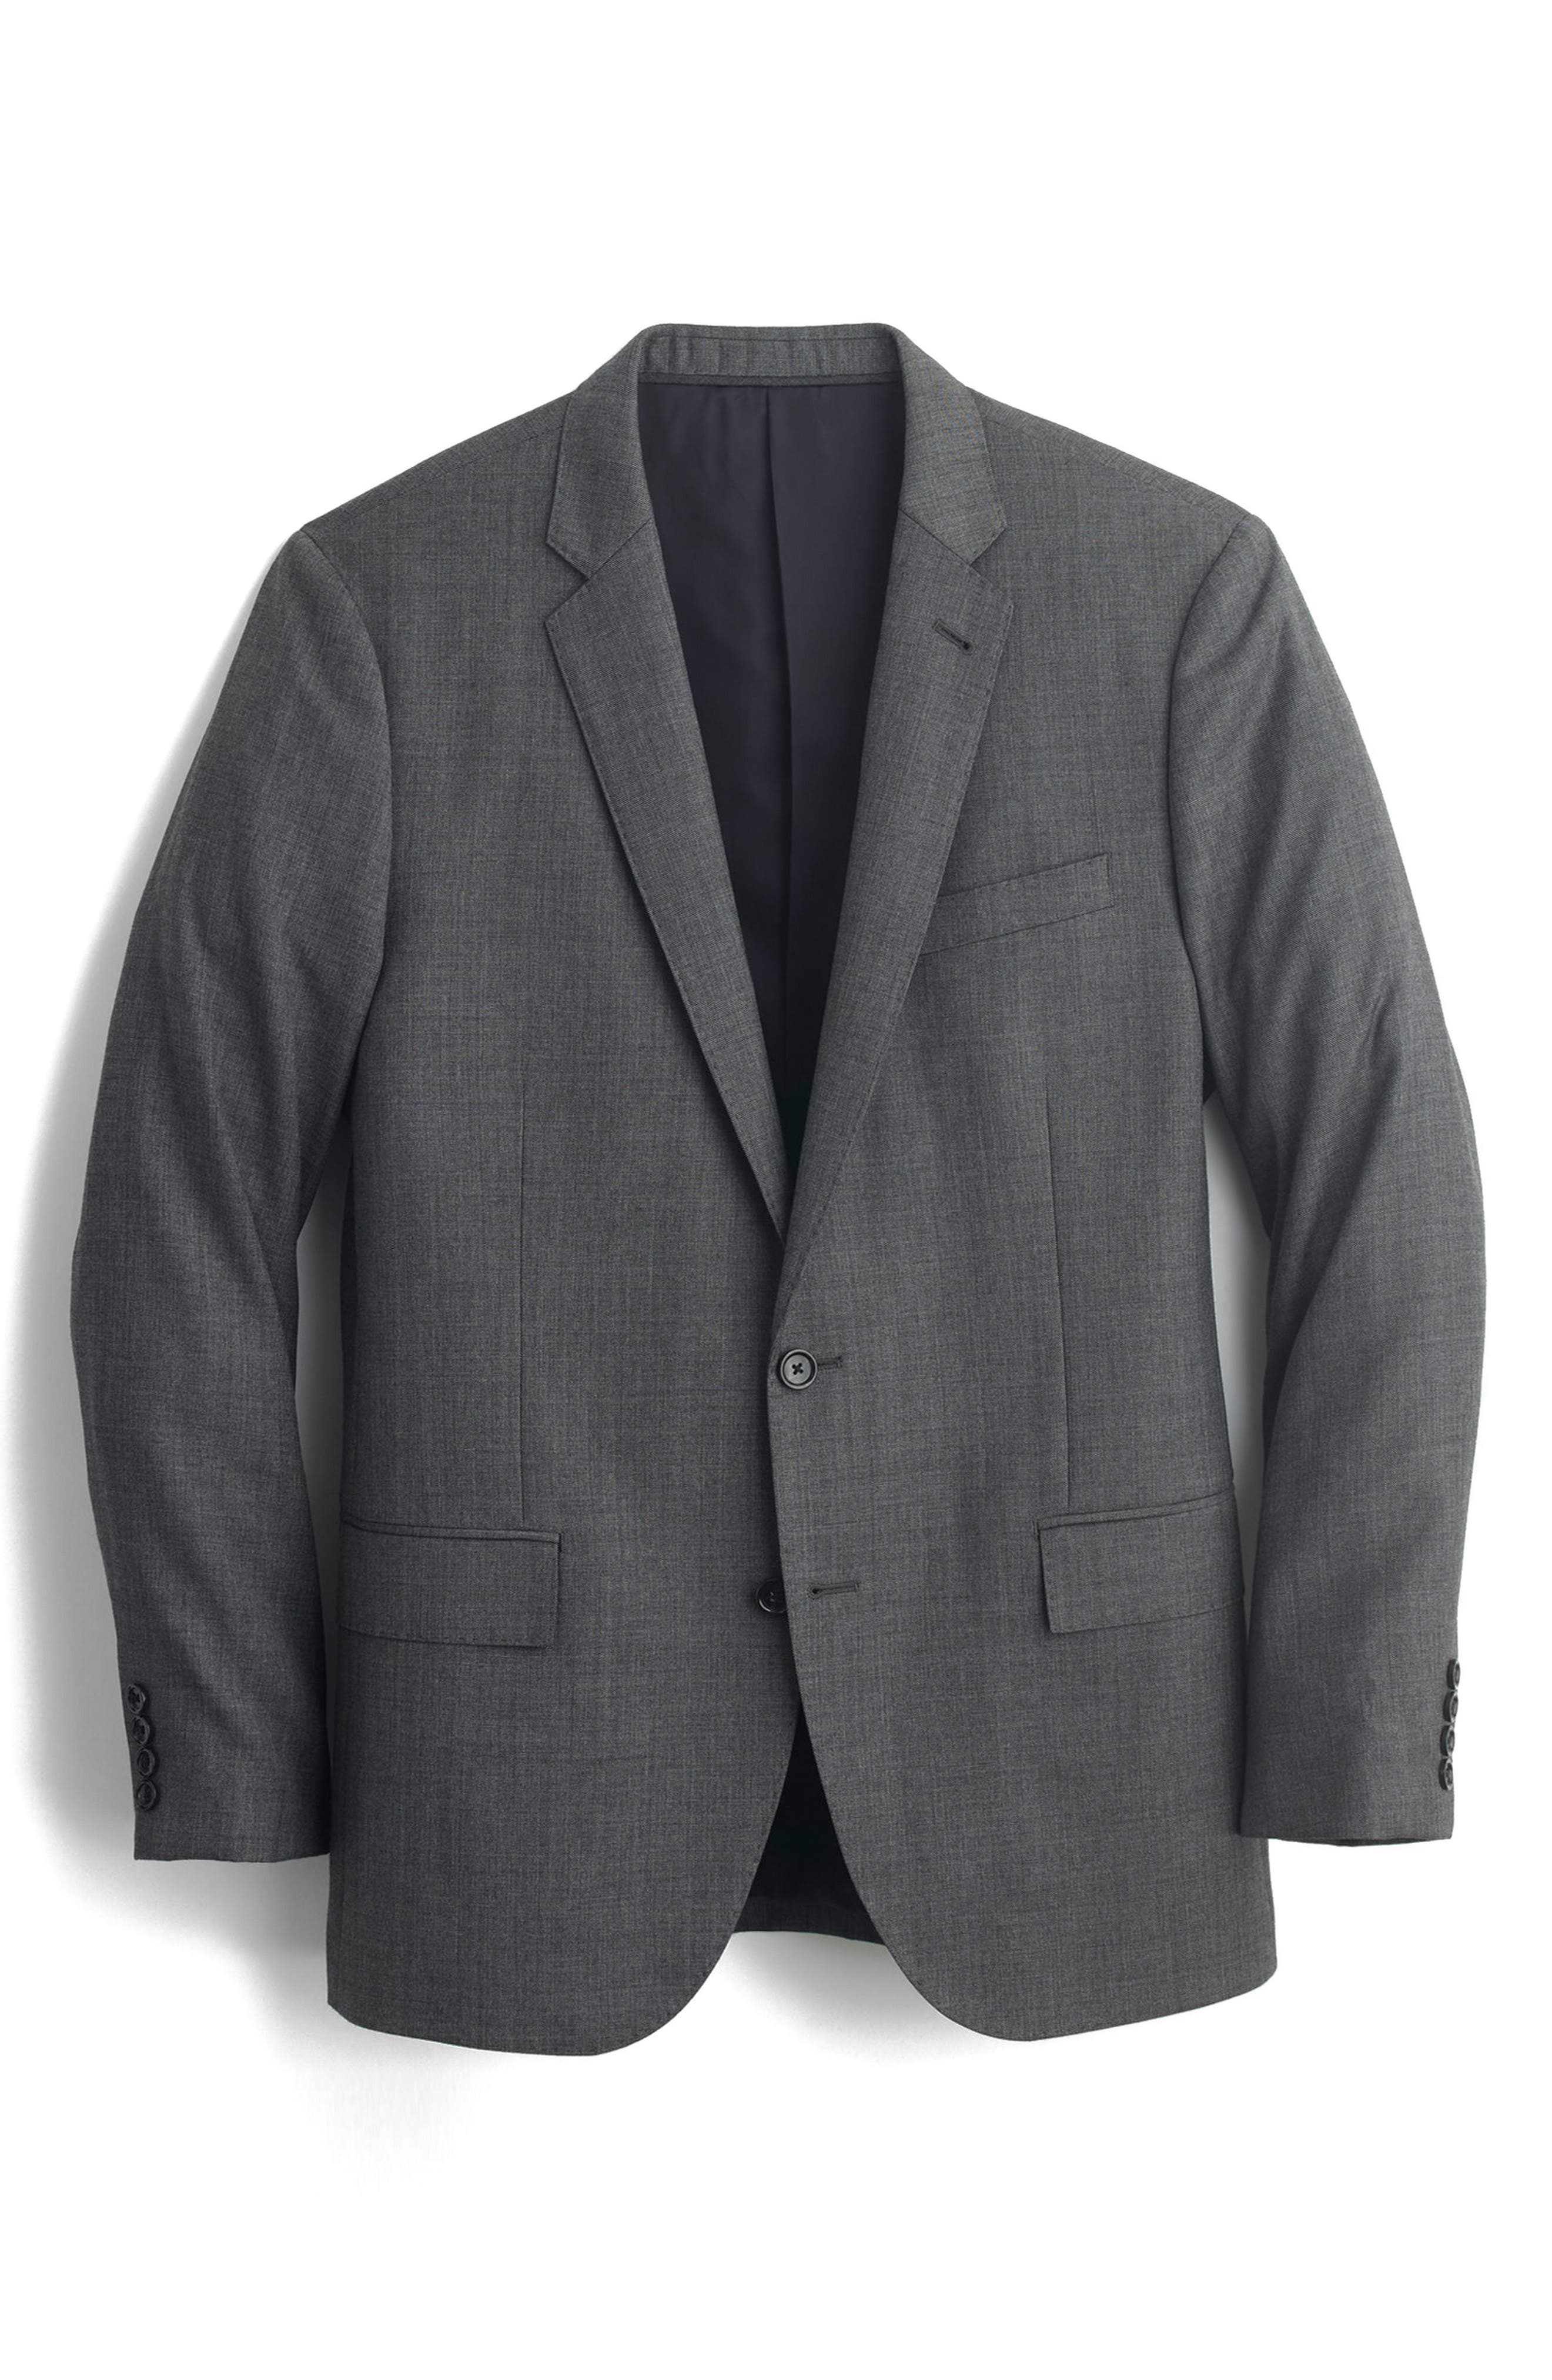 J.Crew Ludlow Trim Fit Solid Wool Sport Coat,                             Alternate thumbnail 7, color,                             Charcoal